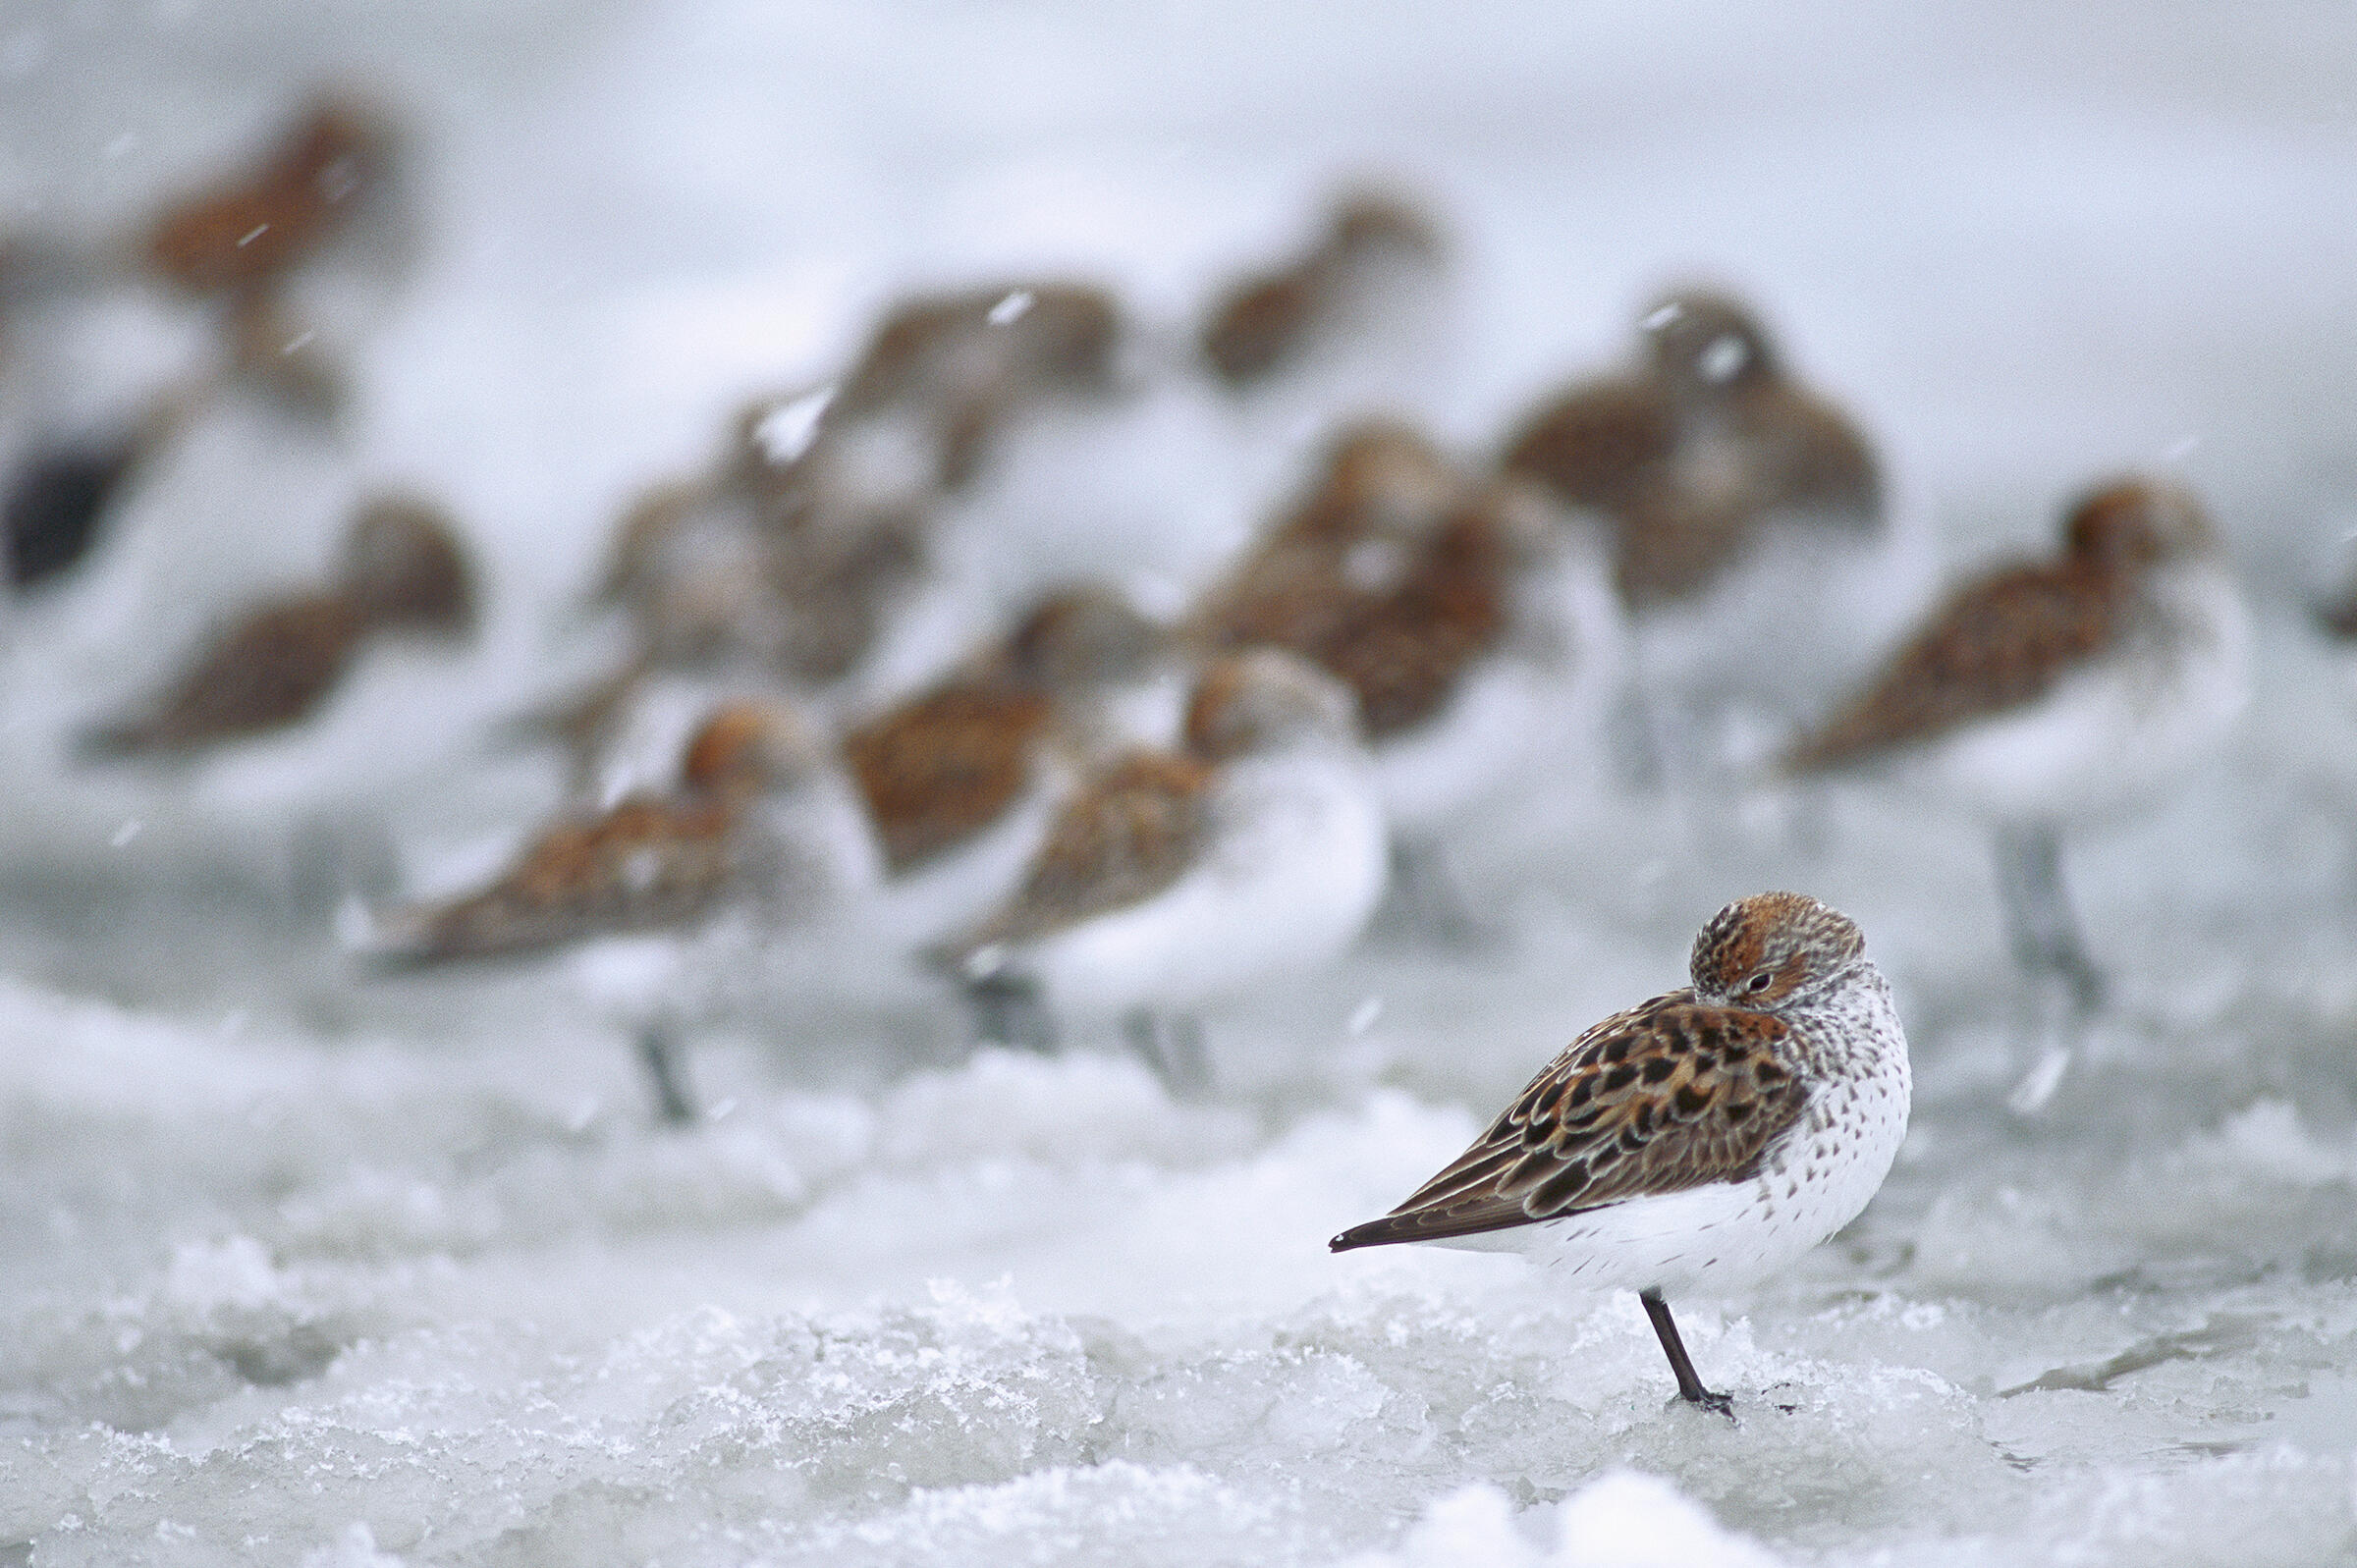 Due to late snowmelt, Western Sandpiper breeding was a bust in Alaska this summer, says shorebird ecologist Richard Lanctot of the U.S. Fish and Wildlife Service. Michael Quinton/Minden Pictures